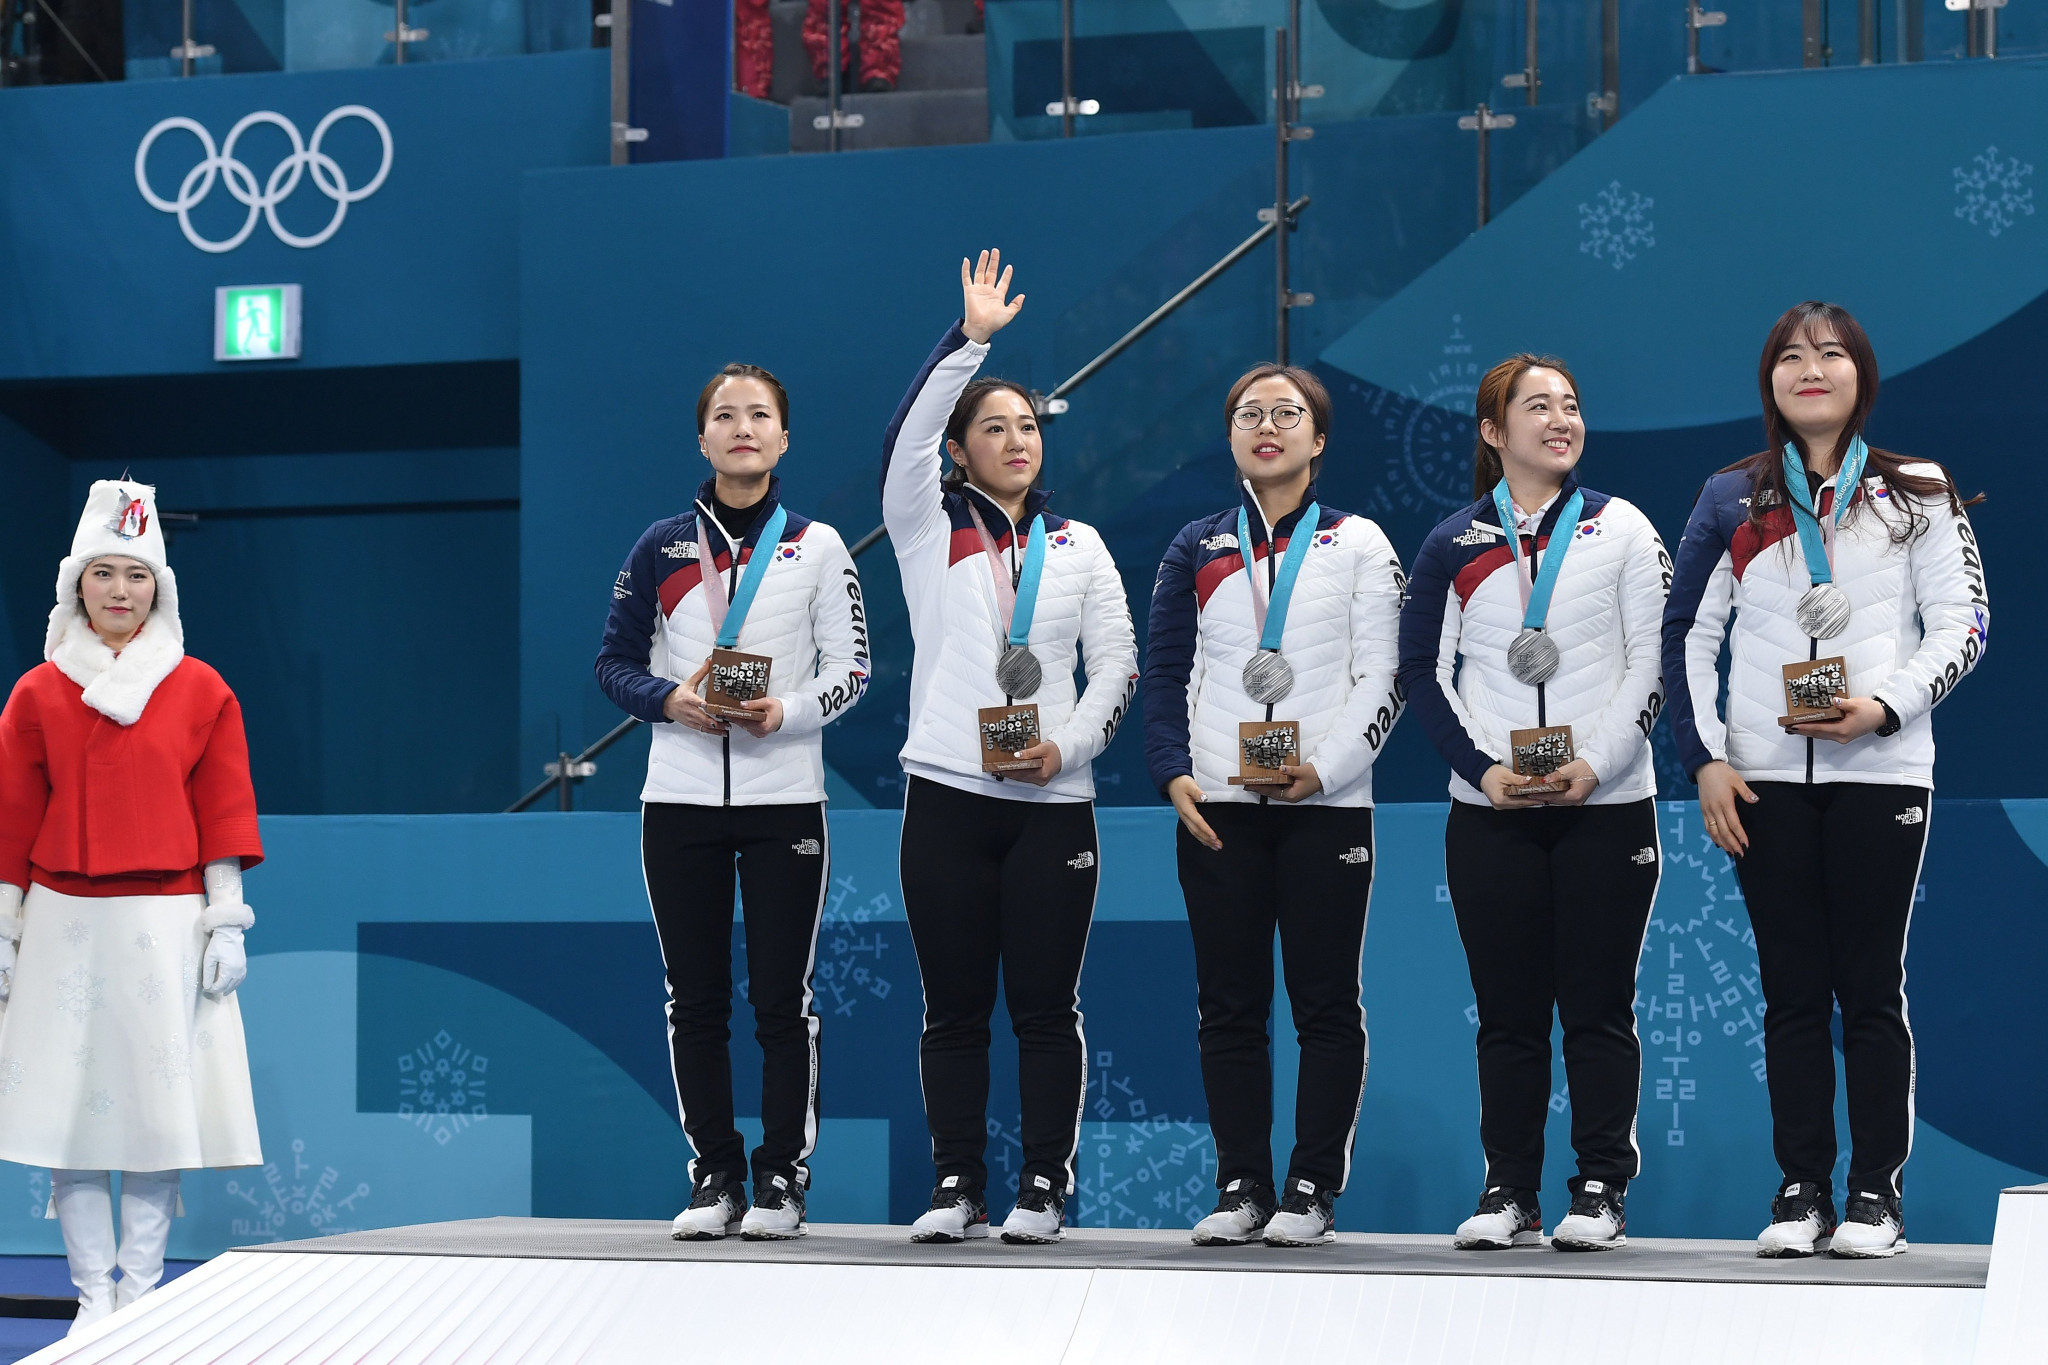 The South Korean women's curling team won their country's first Olympic medal in curling after achieving silver at the 2018 Pyeongchang Winter Games ©Getty Images